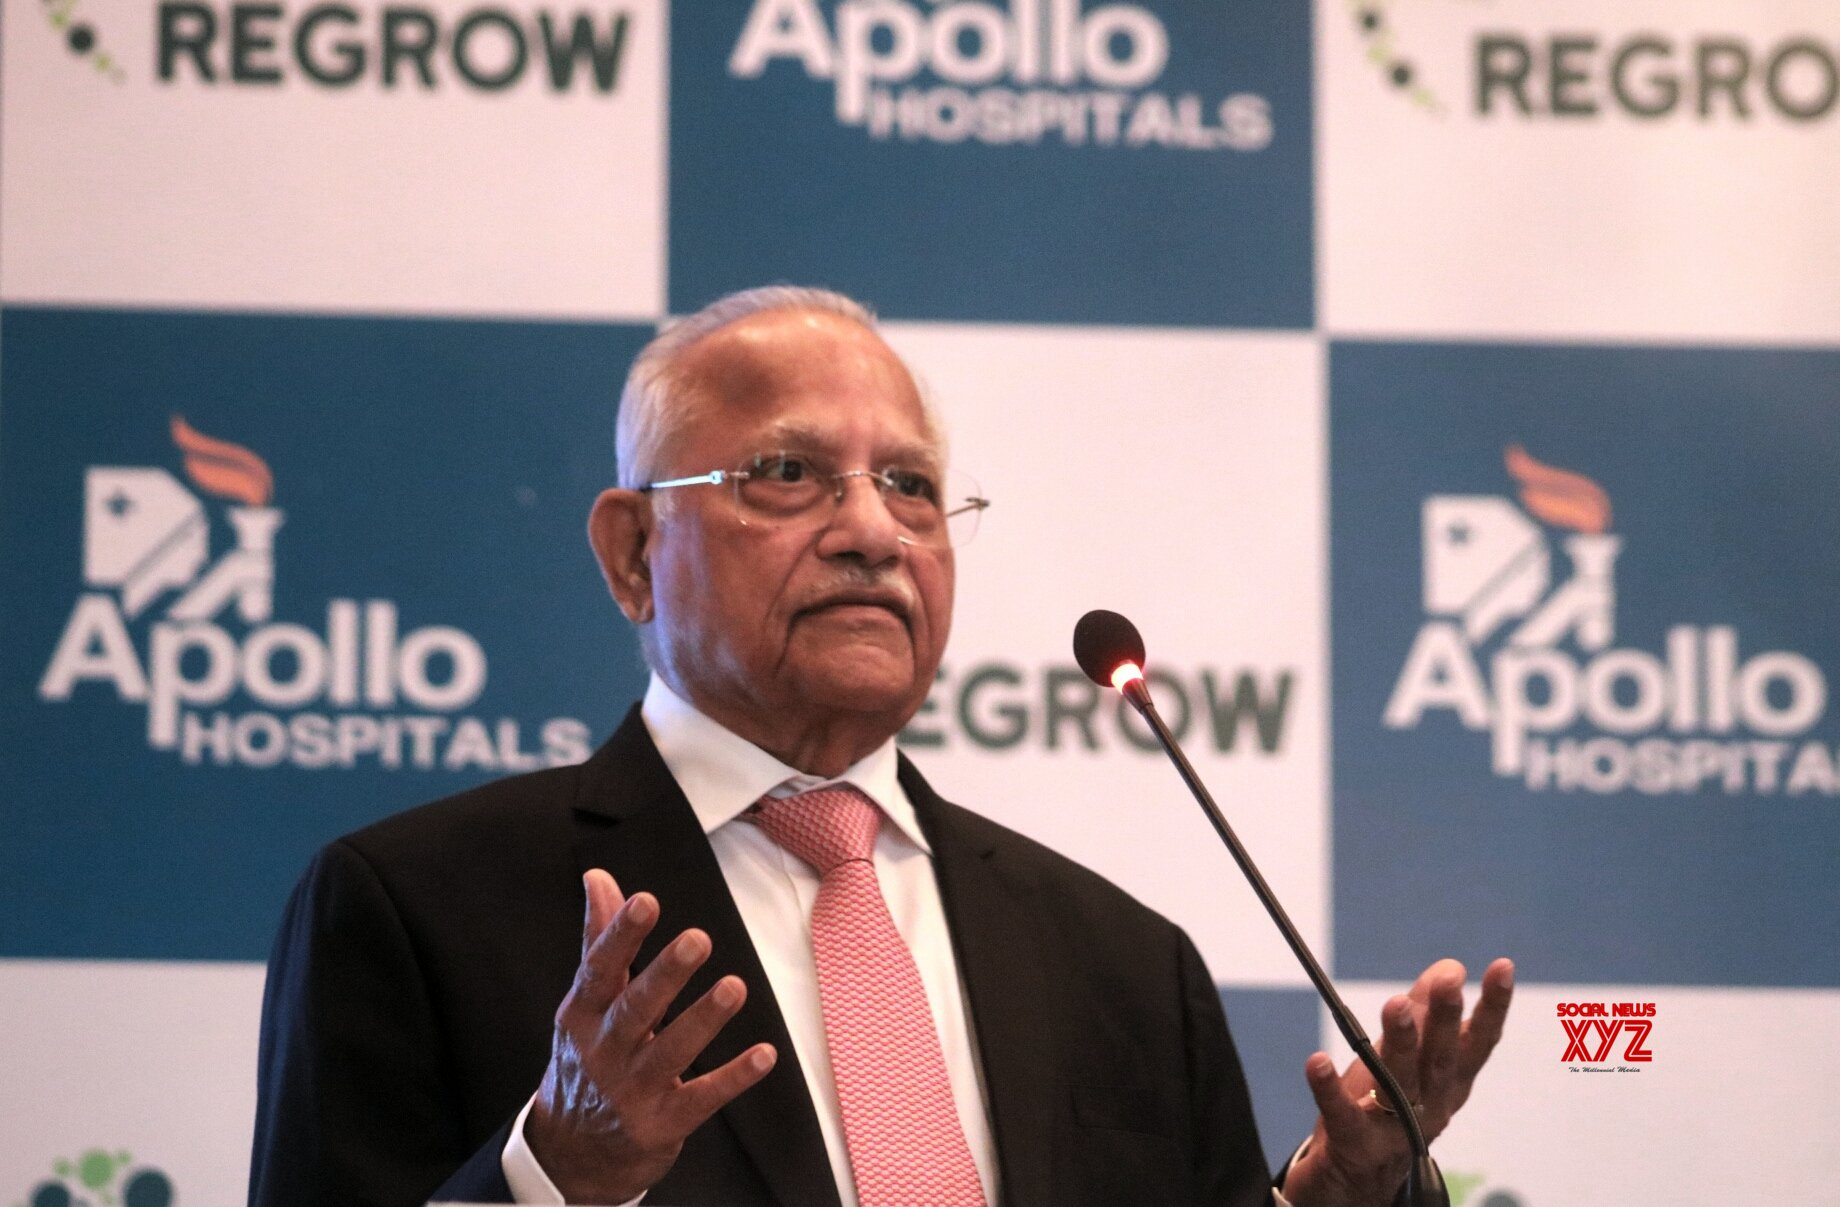 Apollo Hospitals launches 'Project Kavach' to fight pandemic